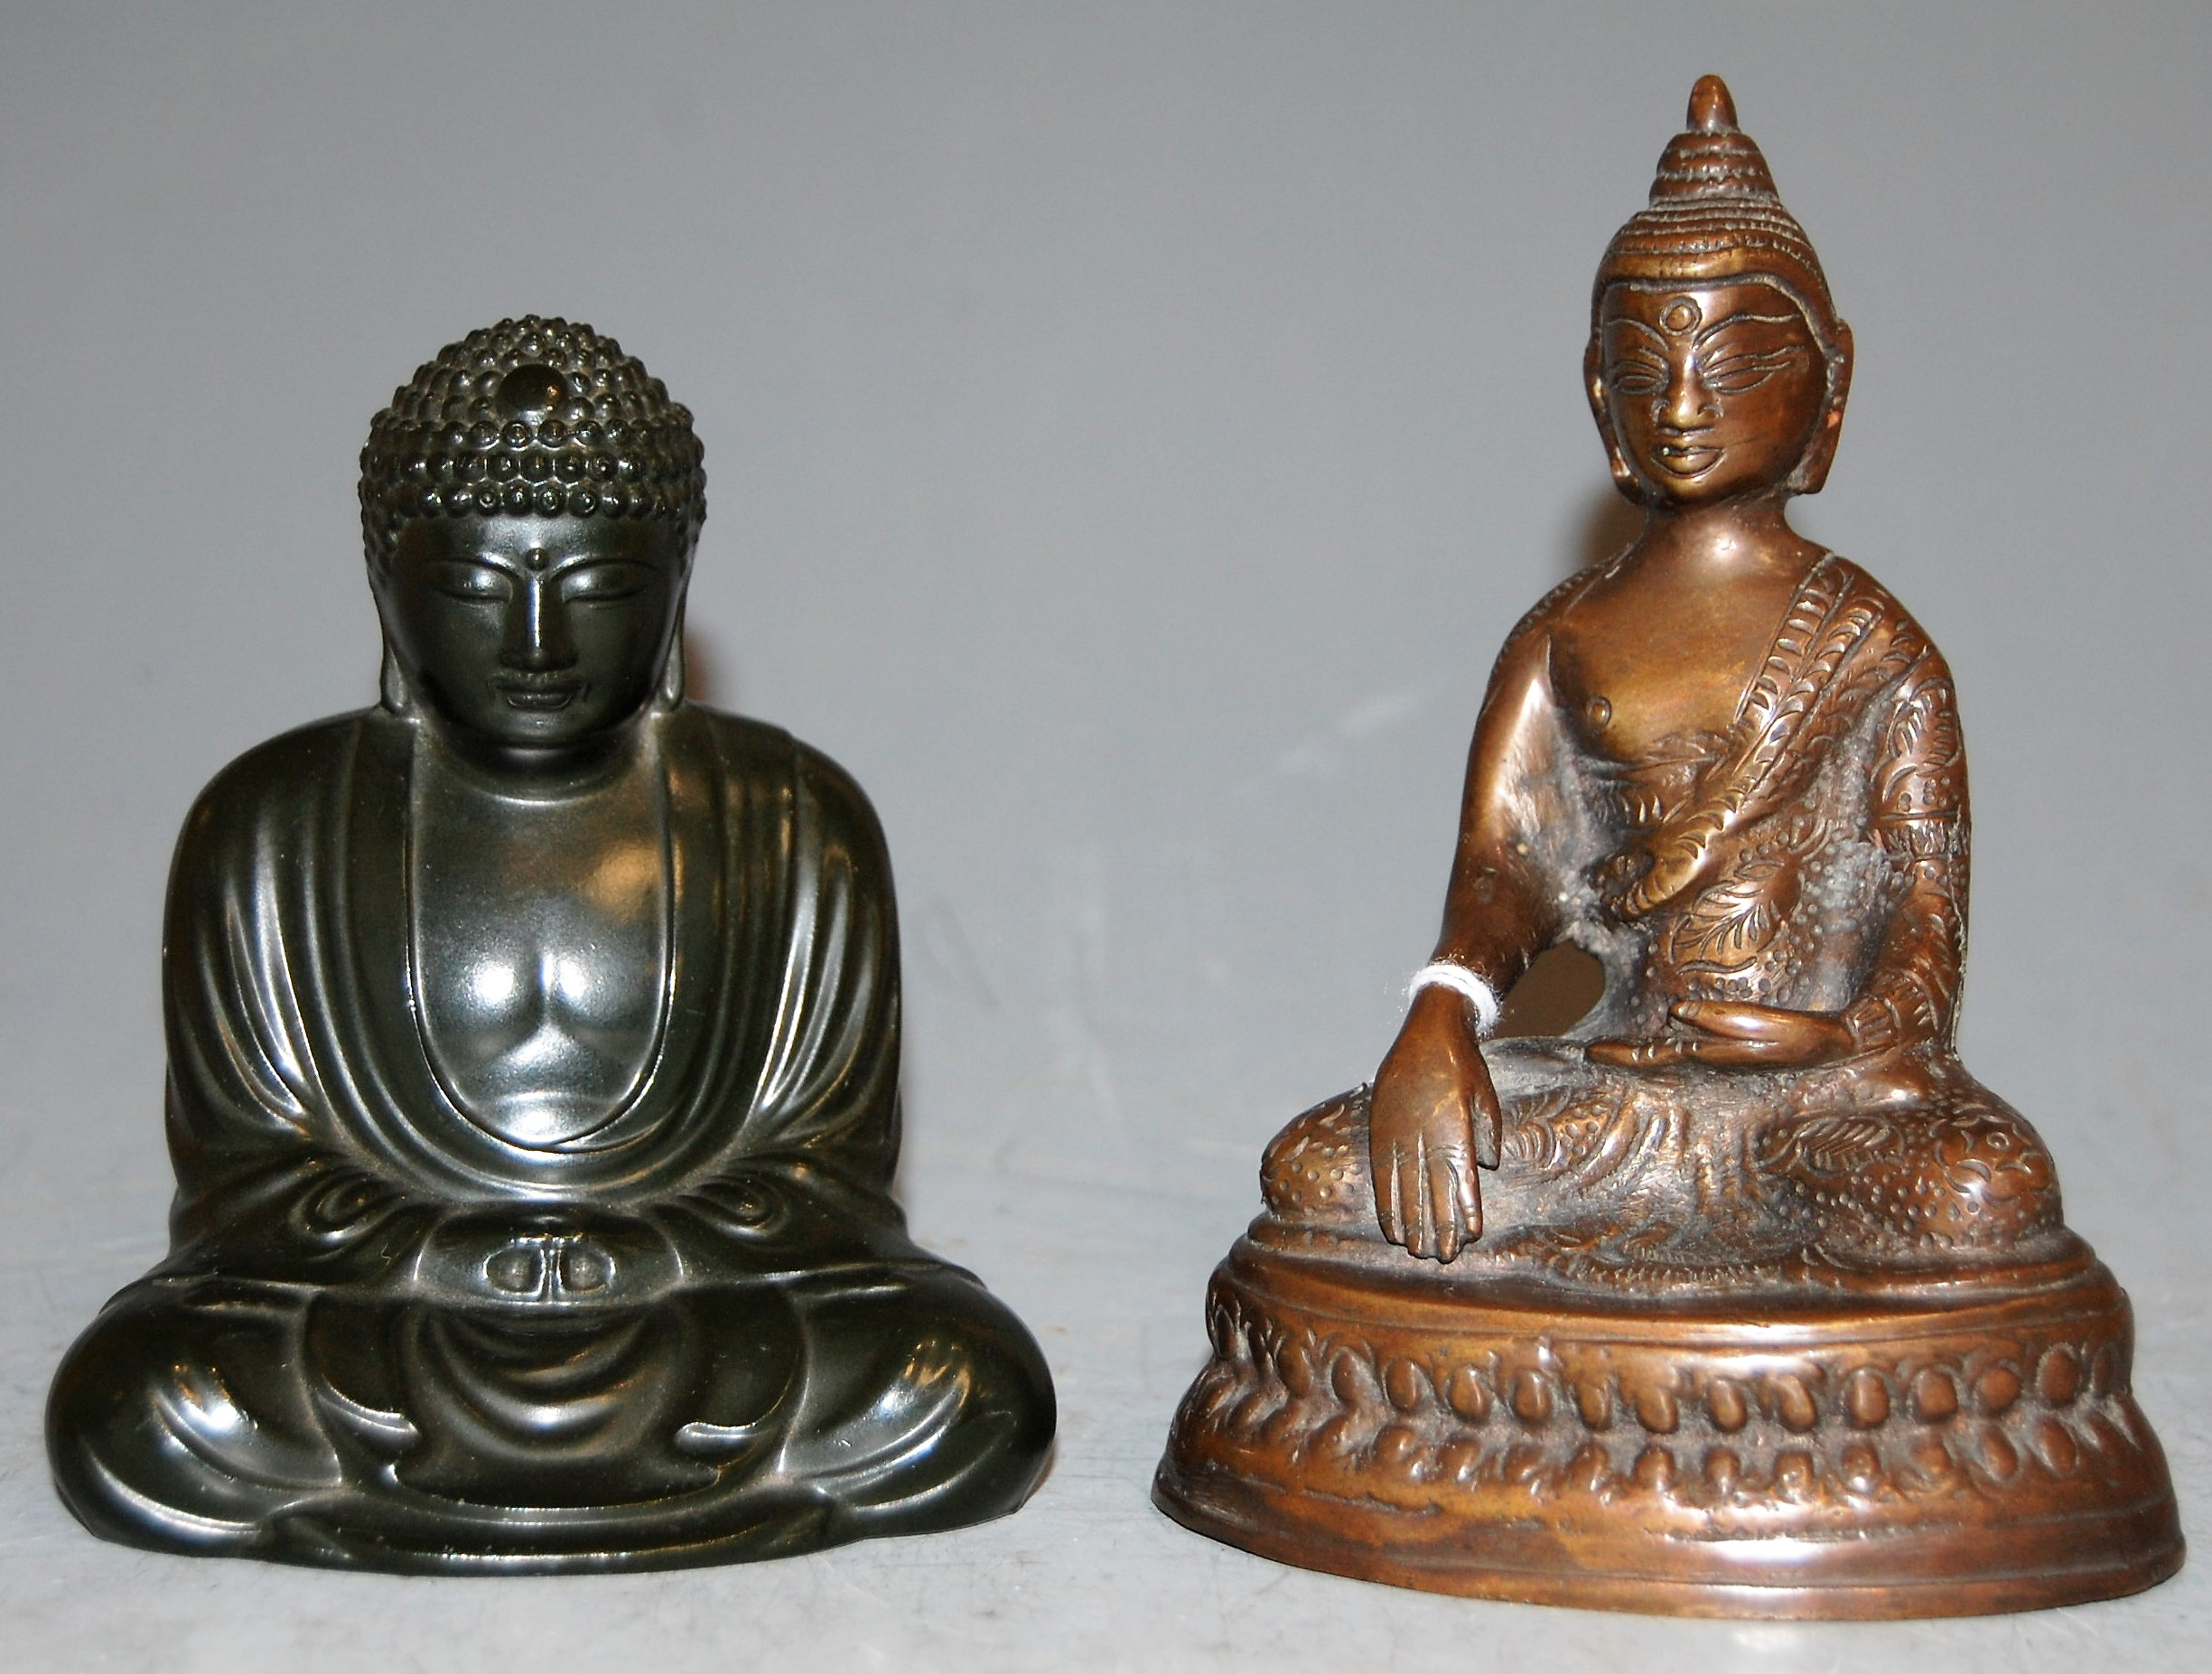 Lot 16 - A Tibetan bronze Buddha in seated lotus pose, h.15cm; together with one other seated Buddha (2)